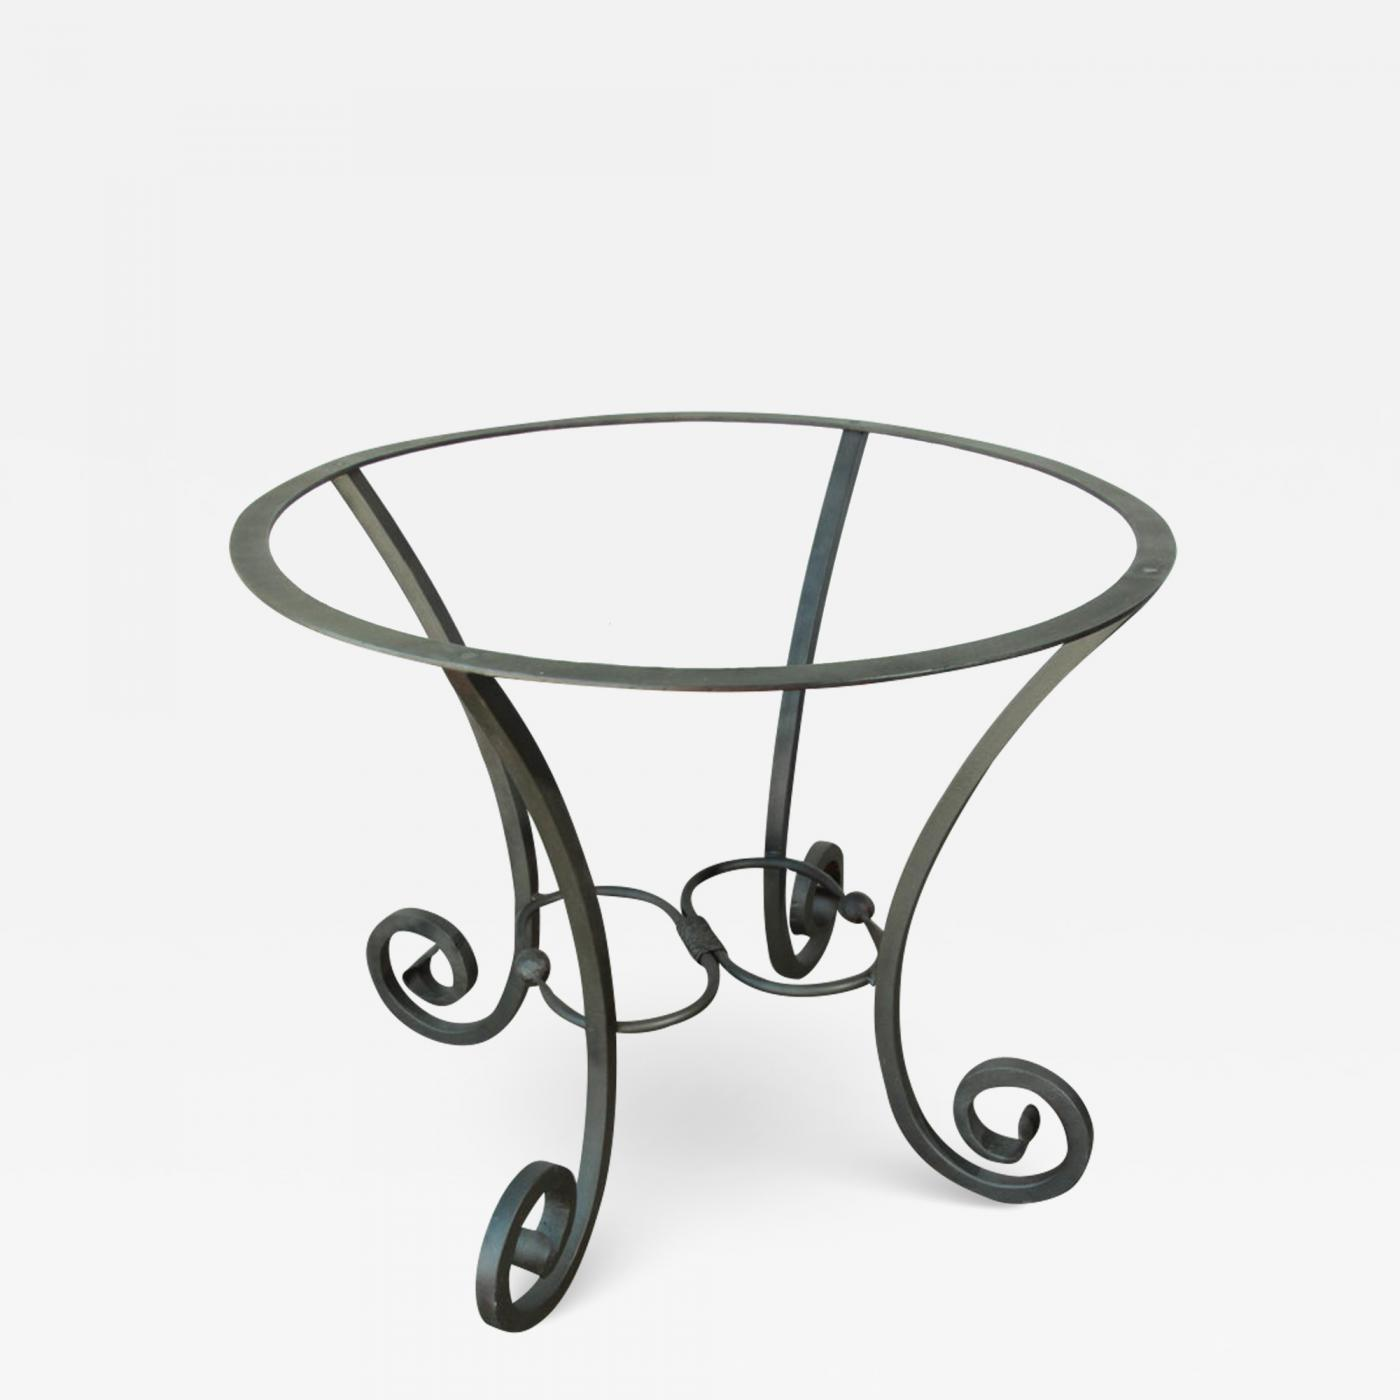 Picture of: Spanish Wrought Iron Dining Table Pedestal Base Indoor Or Outdoor